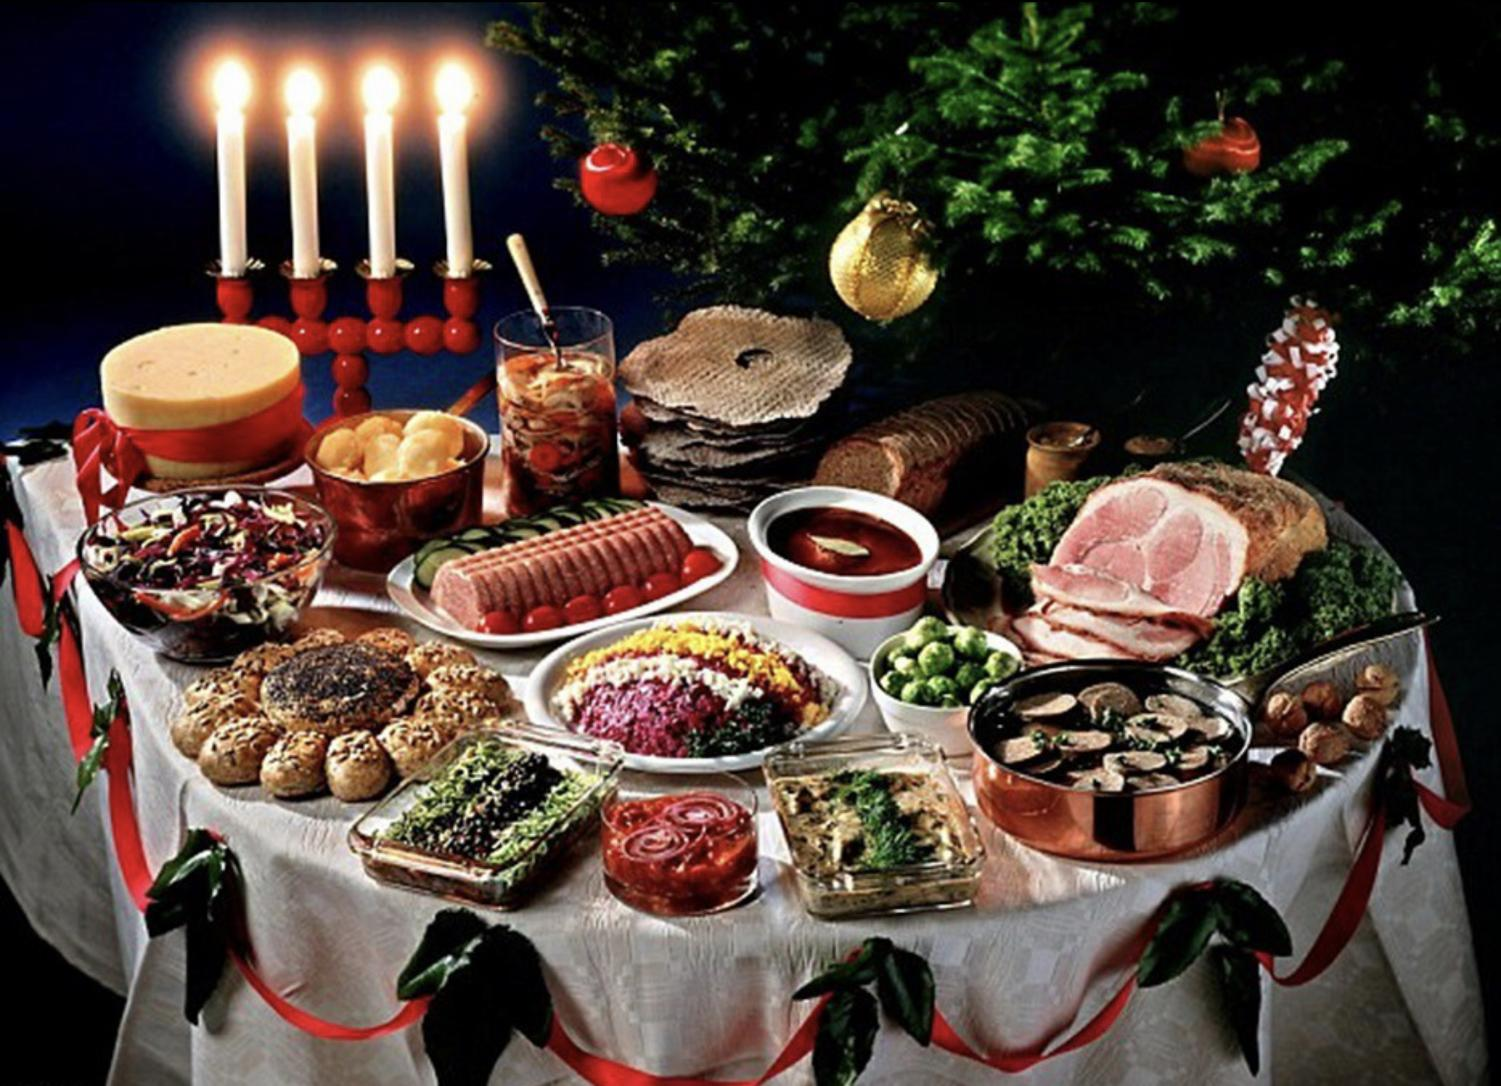 No matter one's background, food is at the heart of most family Christmas traditions.